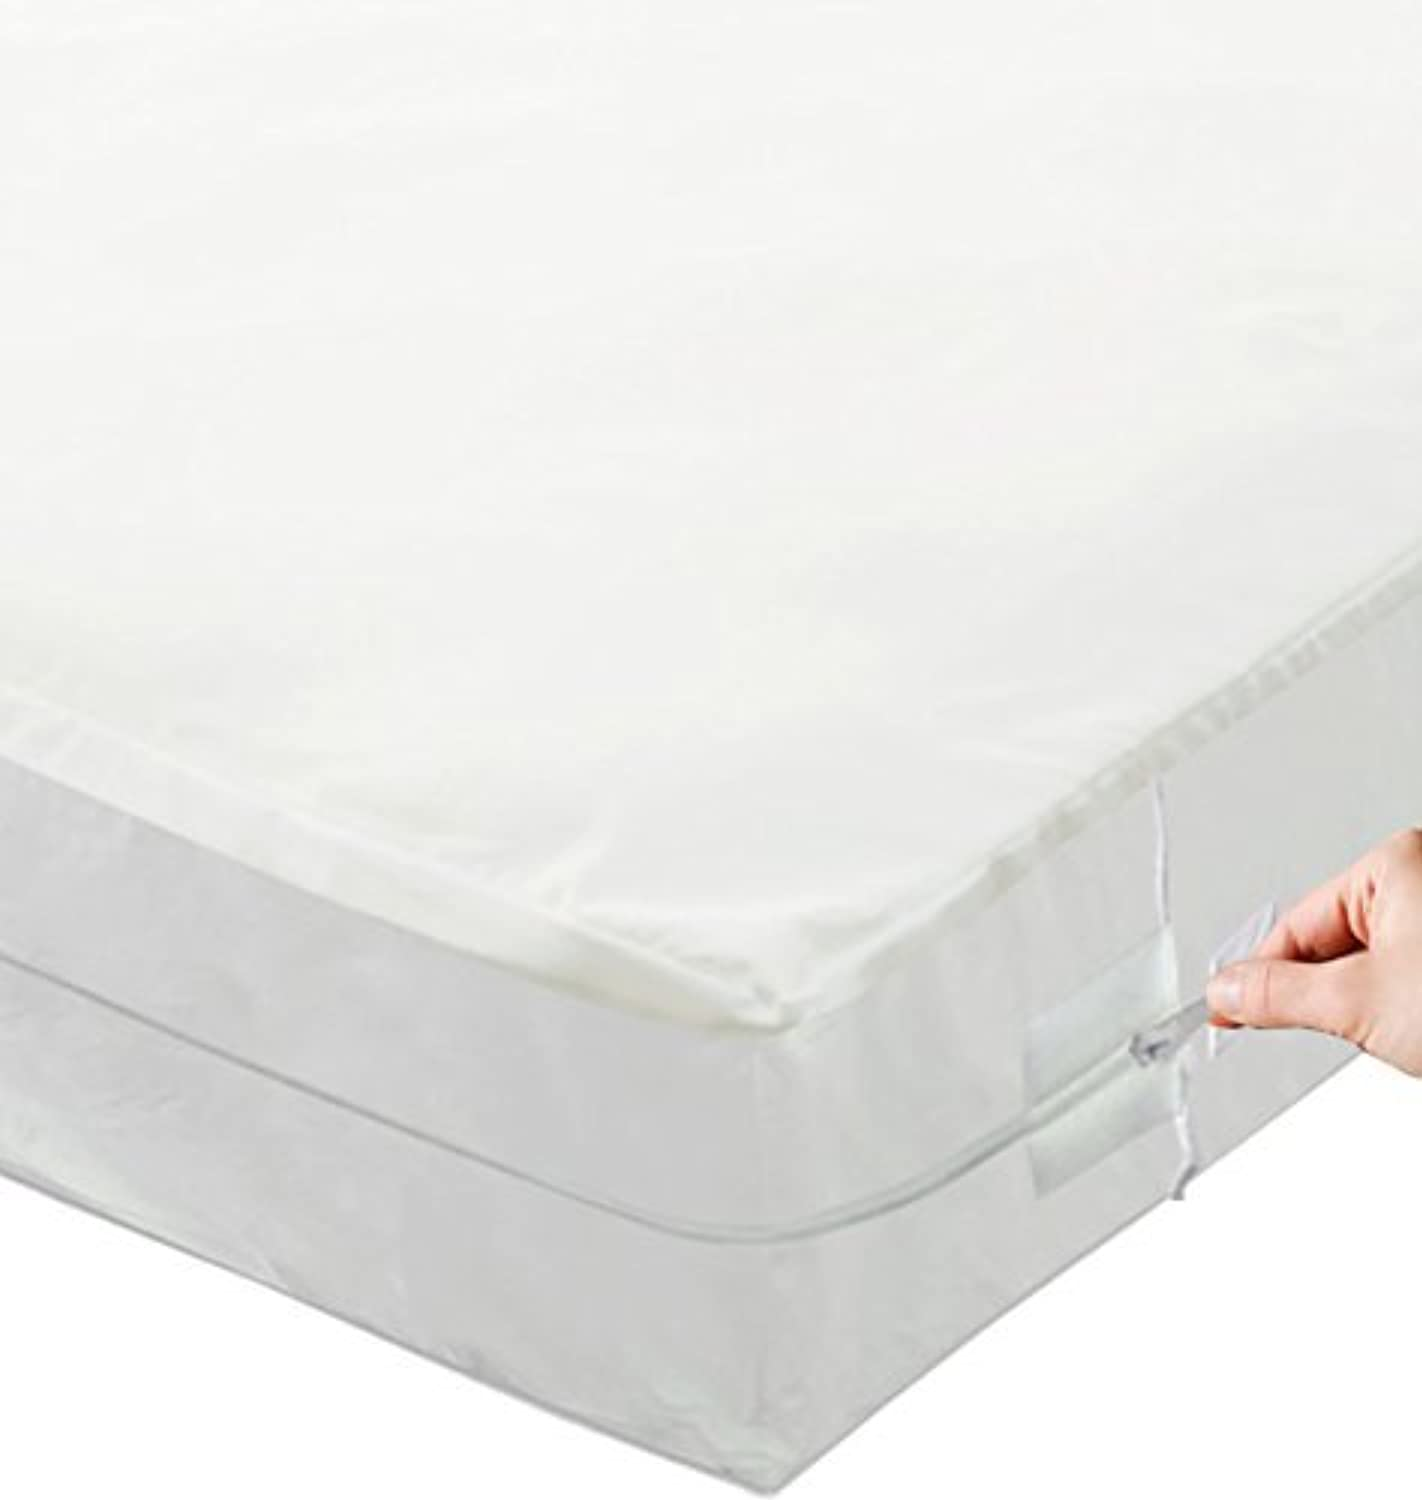 Continental Sleep BBP2-3 3 11-13 Box Spring Zippered Encasement Mattress Predector Cover That Fits 11-13  Mattress (2 Pack), Twin